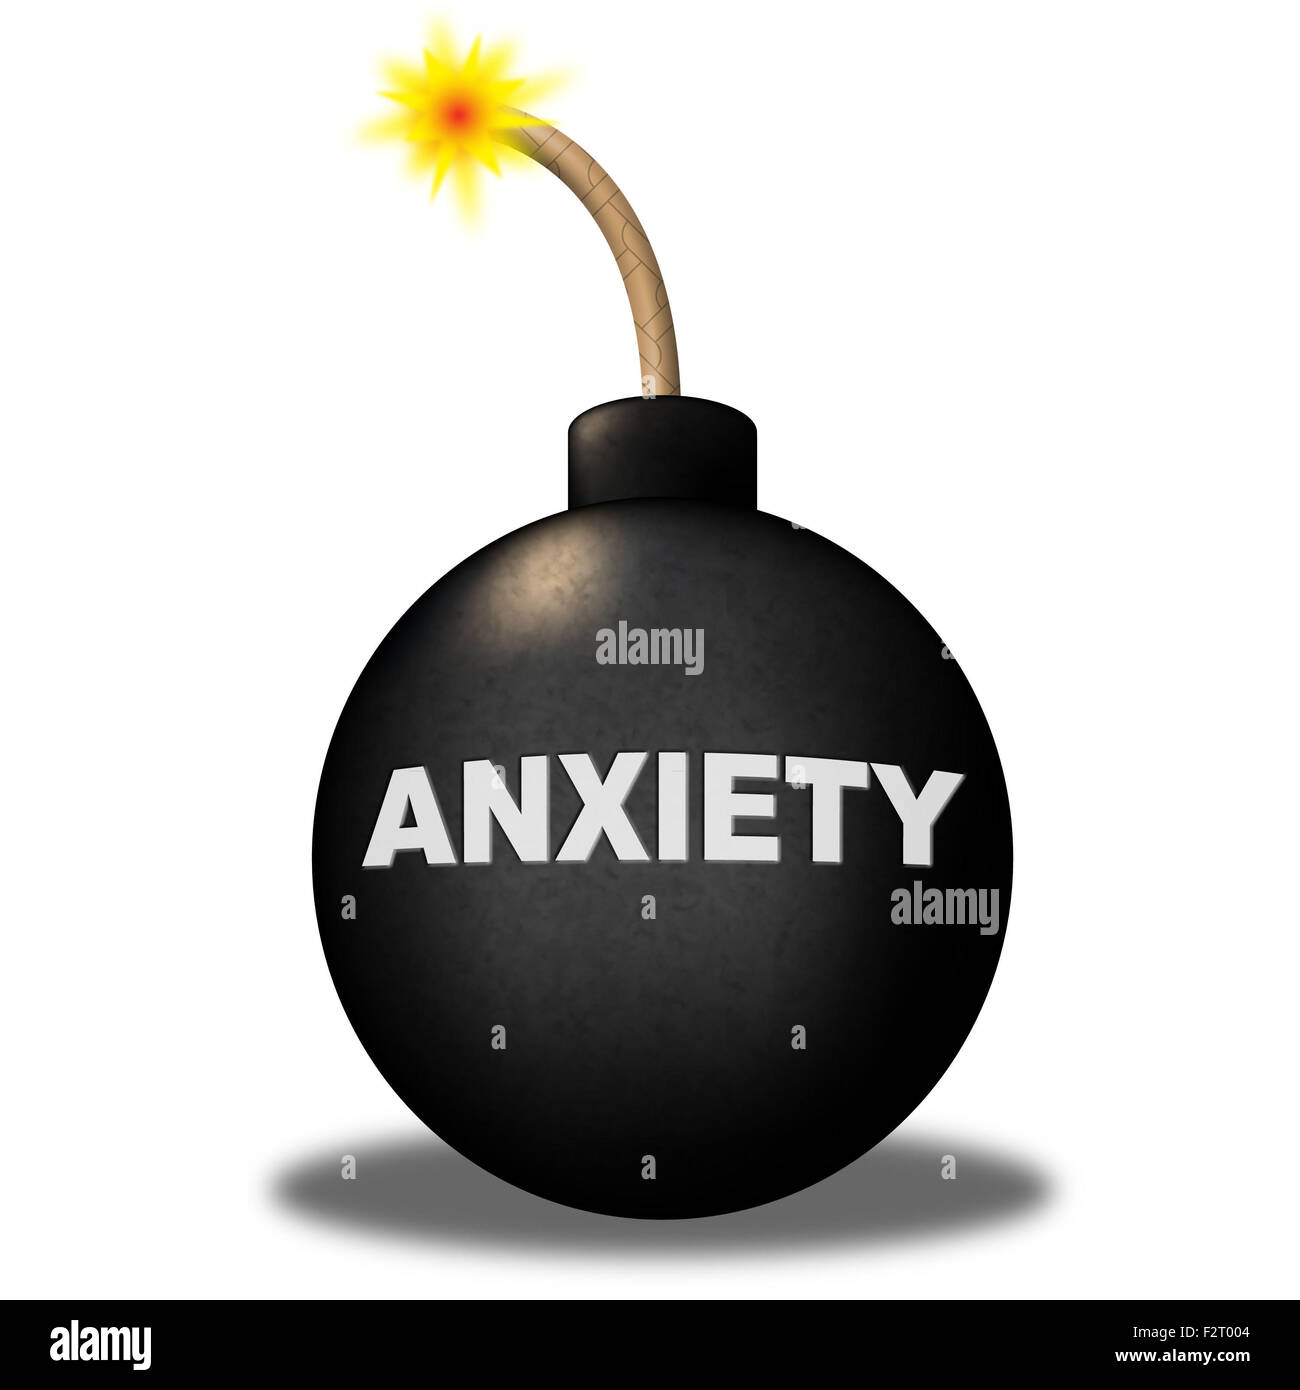 Anxiety Warning Representing Worry Angst And Apprehensiveness Stock Photo